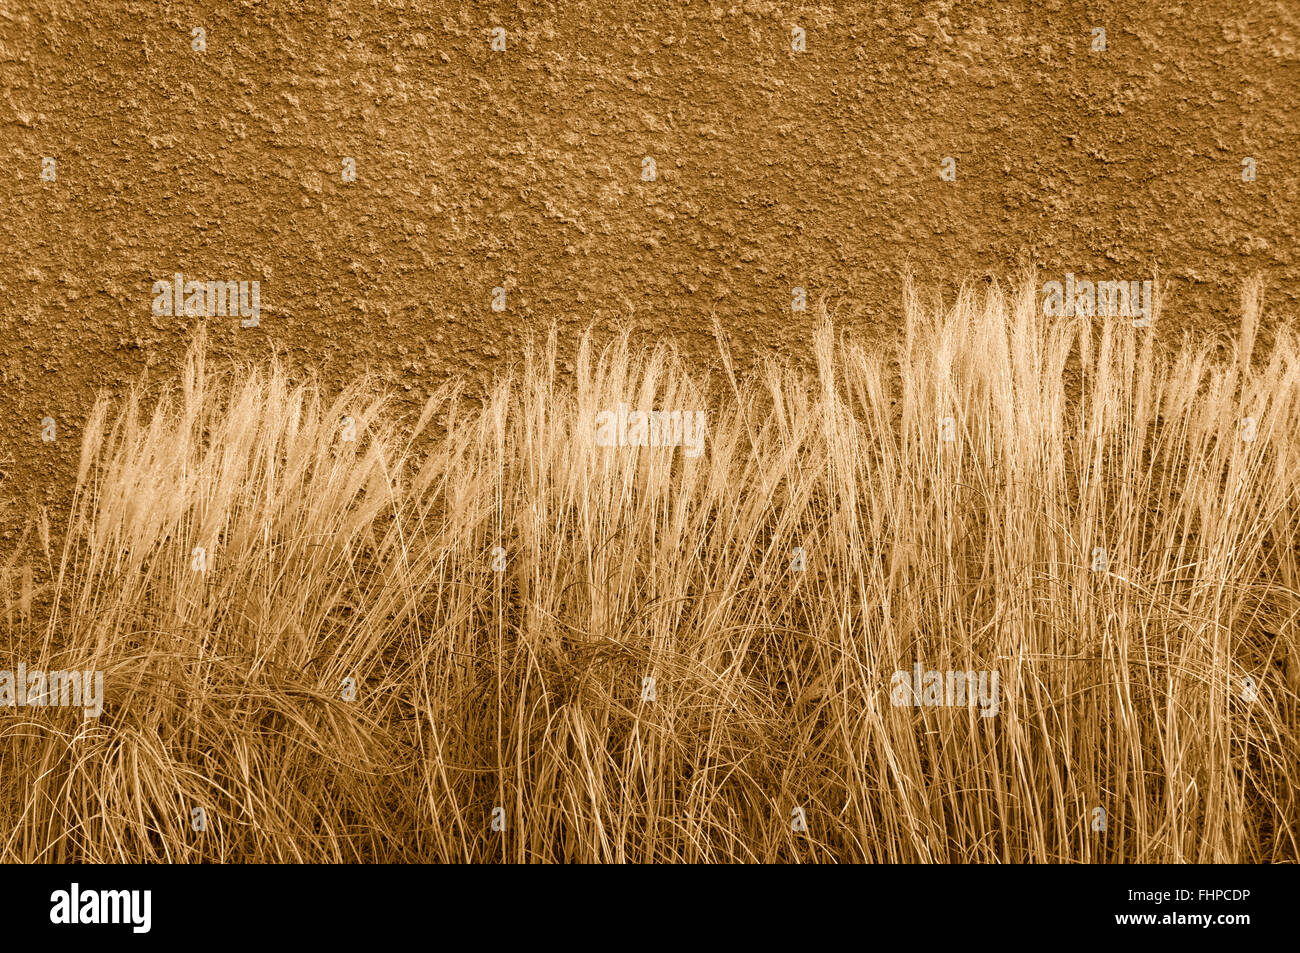 Wispy grass against a stucco wall in sepia - Stock Image